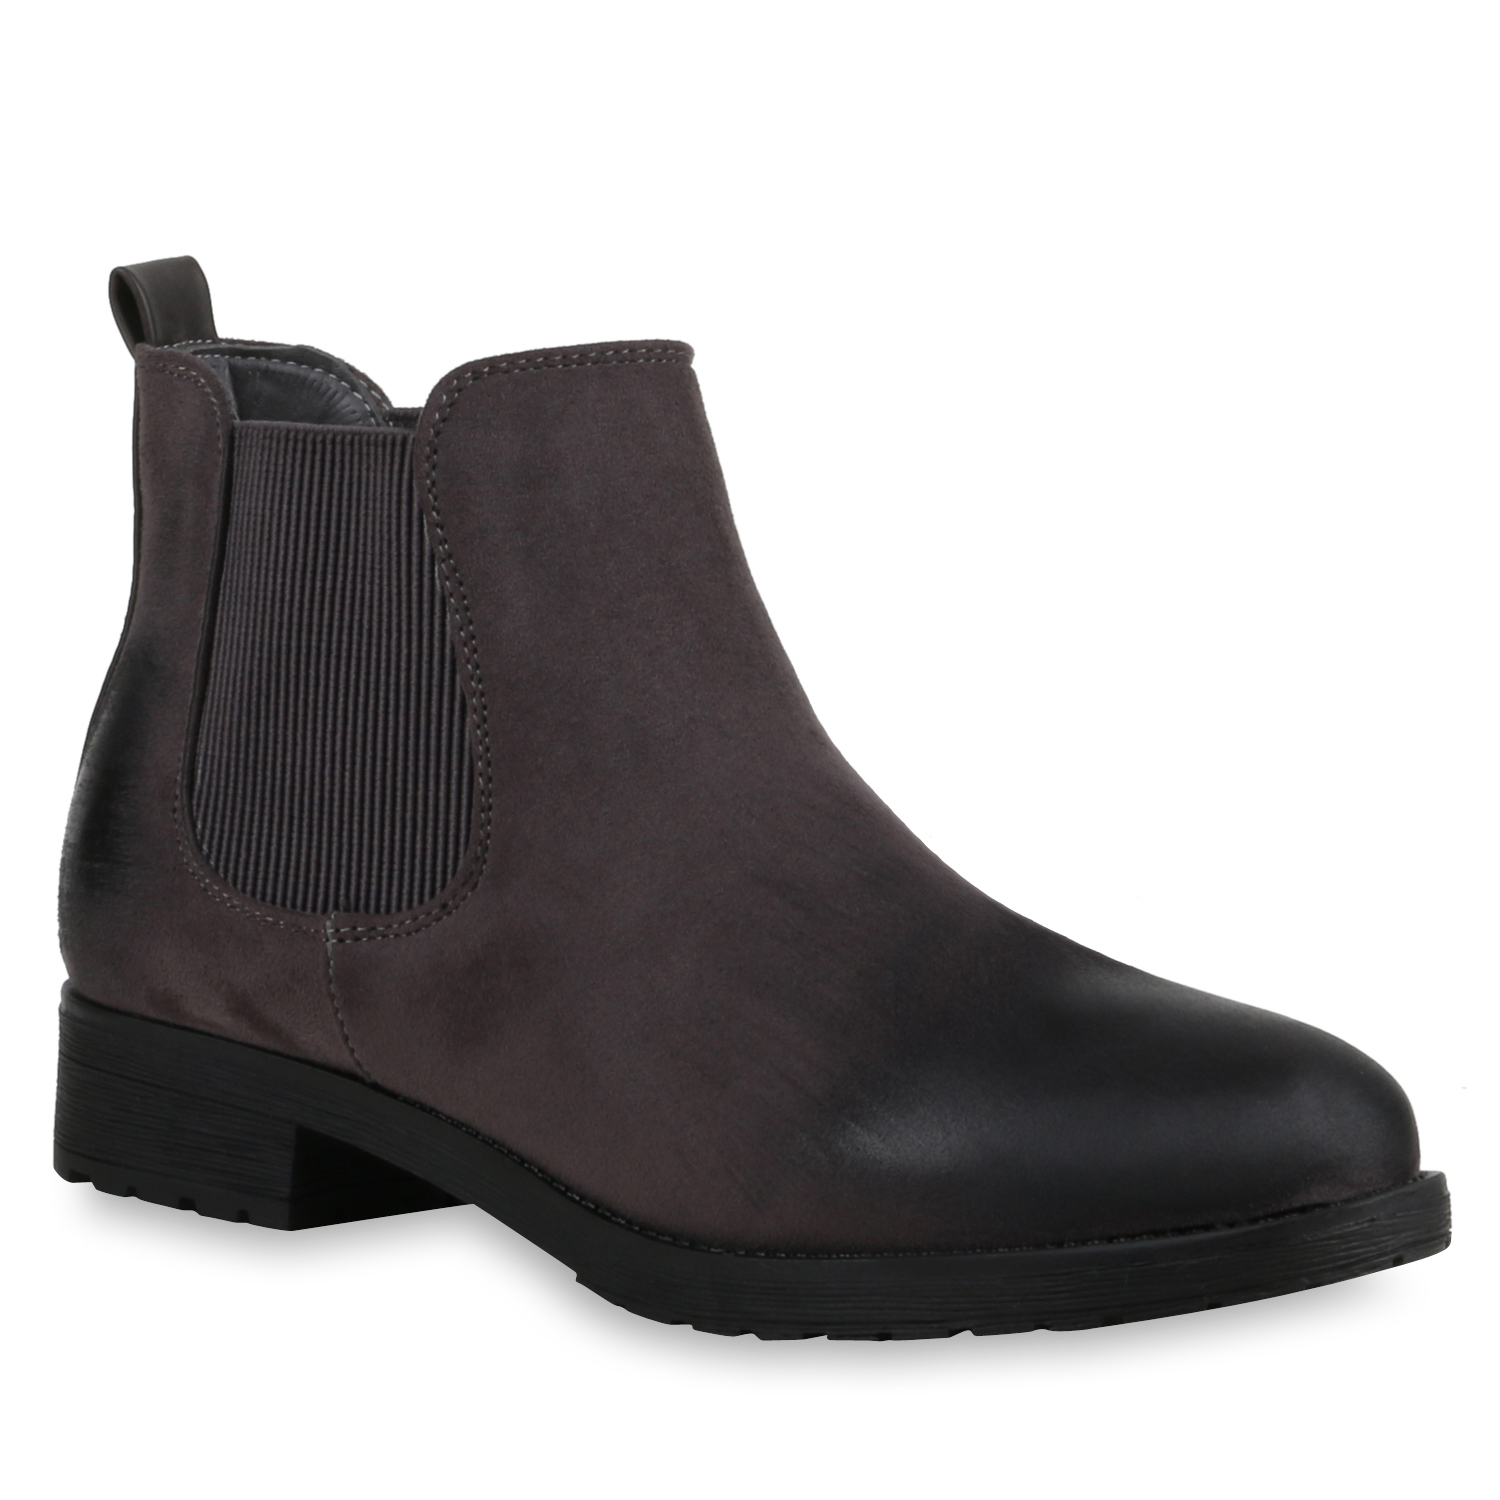 damen lack chelsea boots stiefeletten blockabsatz schuhe 78481 modatipp ebay. Black Bedroom Furniture Sets. Home Design Ideas